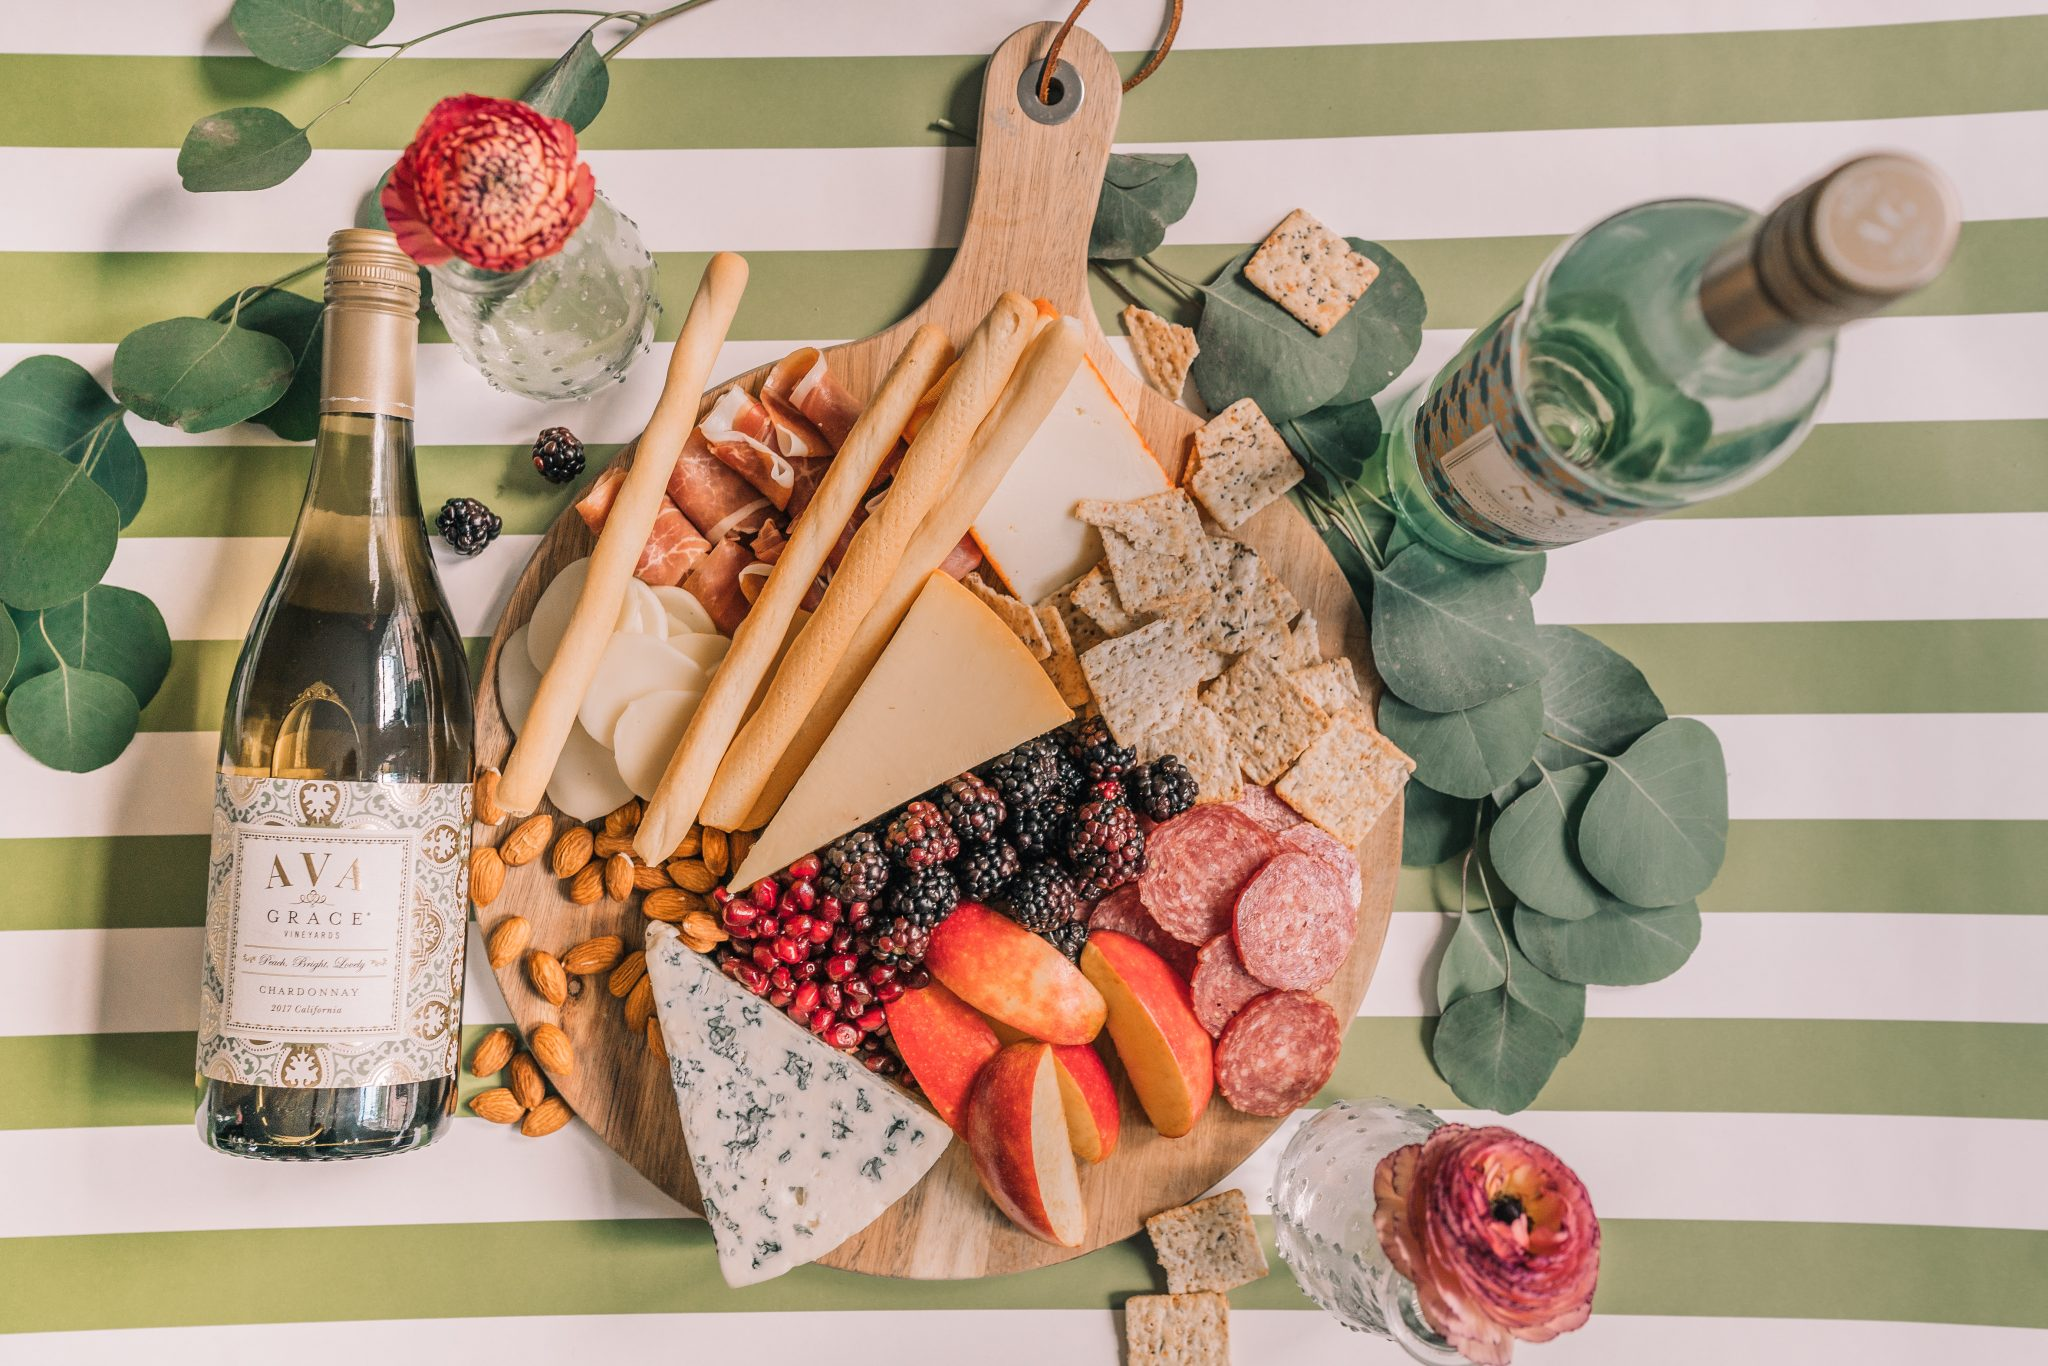 Creating the ultimate charcuterie board at home